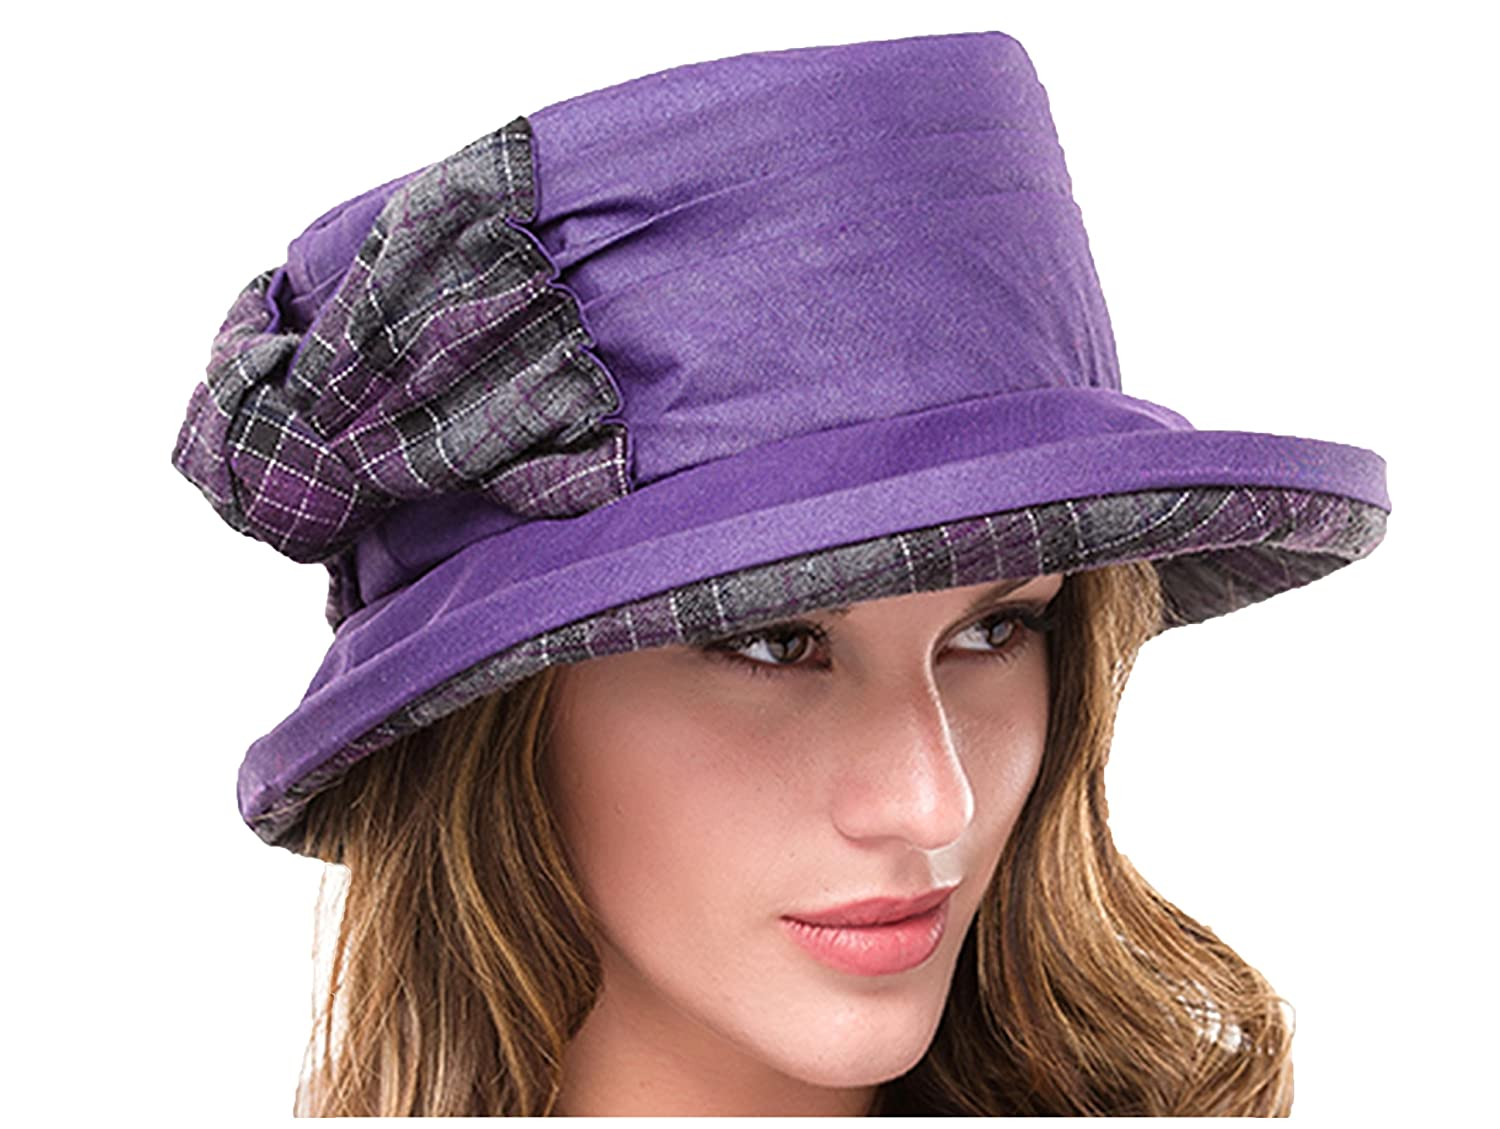 Ladies Ruby Purple Waxed Cotton Waterproof Winter Wax Cloche Hat Tweed with Bow and Brim